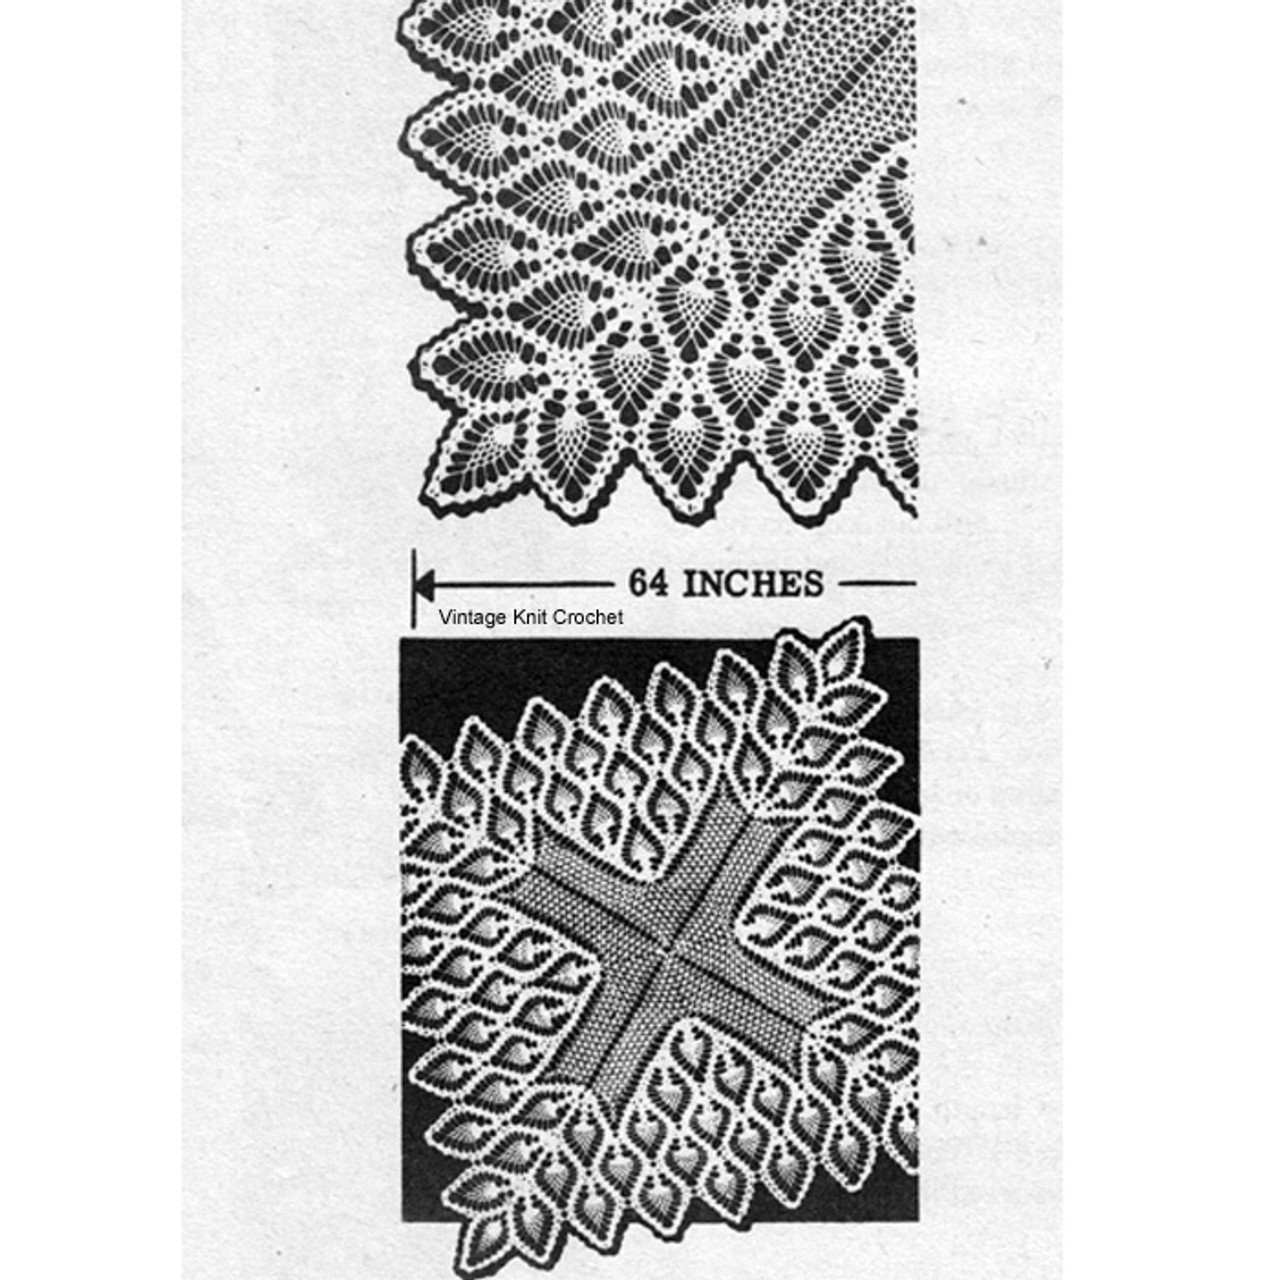 Square Pineapple Crochet Cloth Pattern Alice Brooks 7067